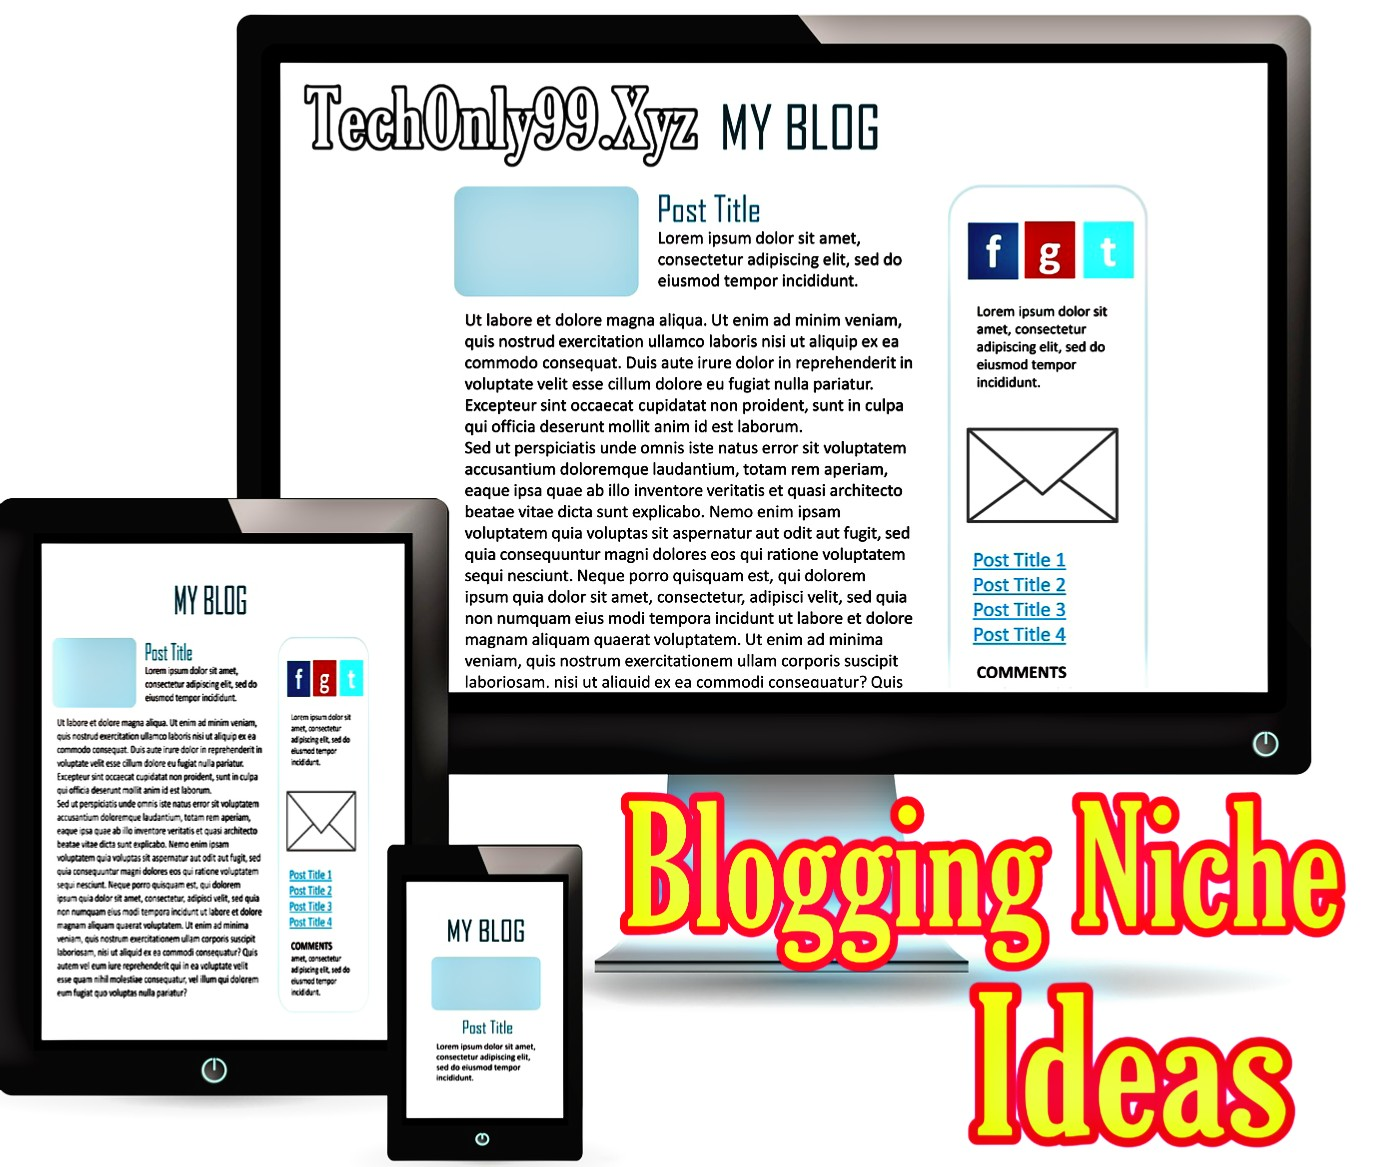 top-5-blogging-niche-ideas-for-bloggers